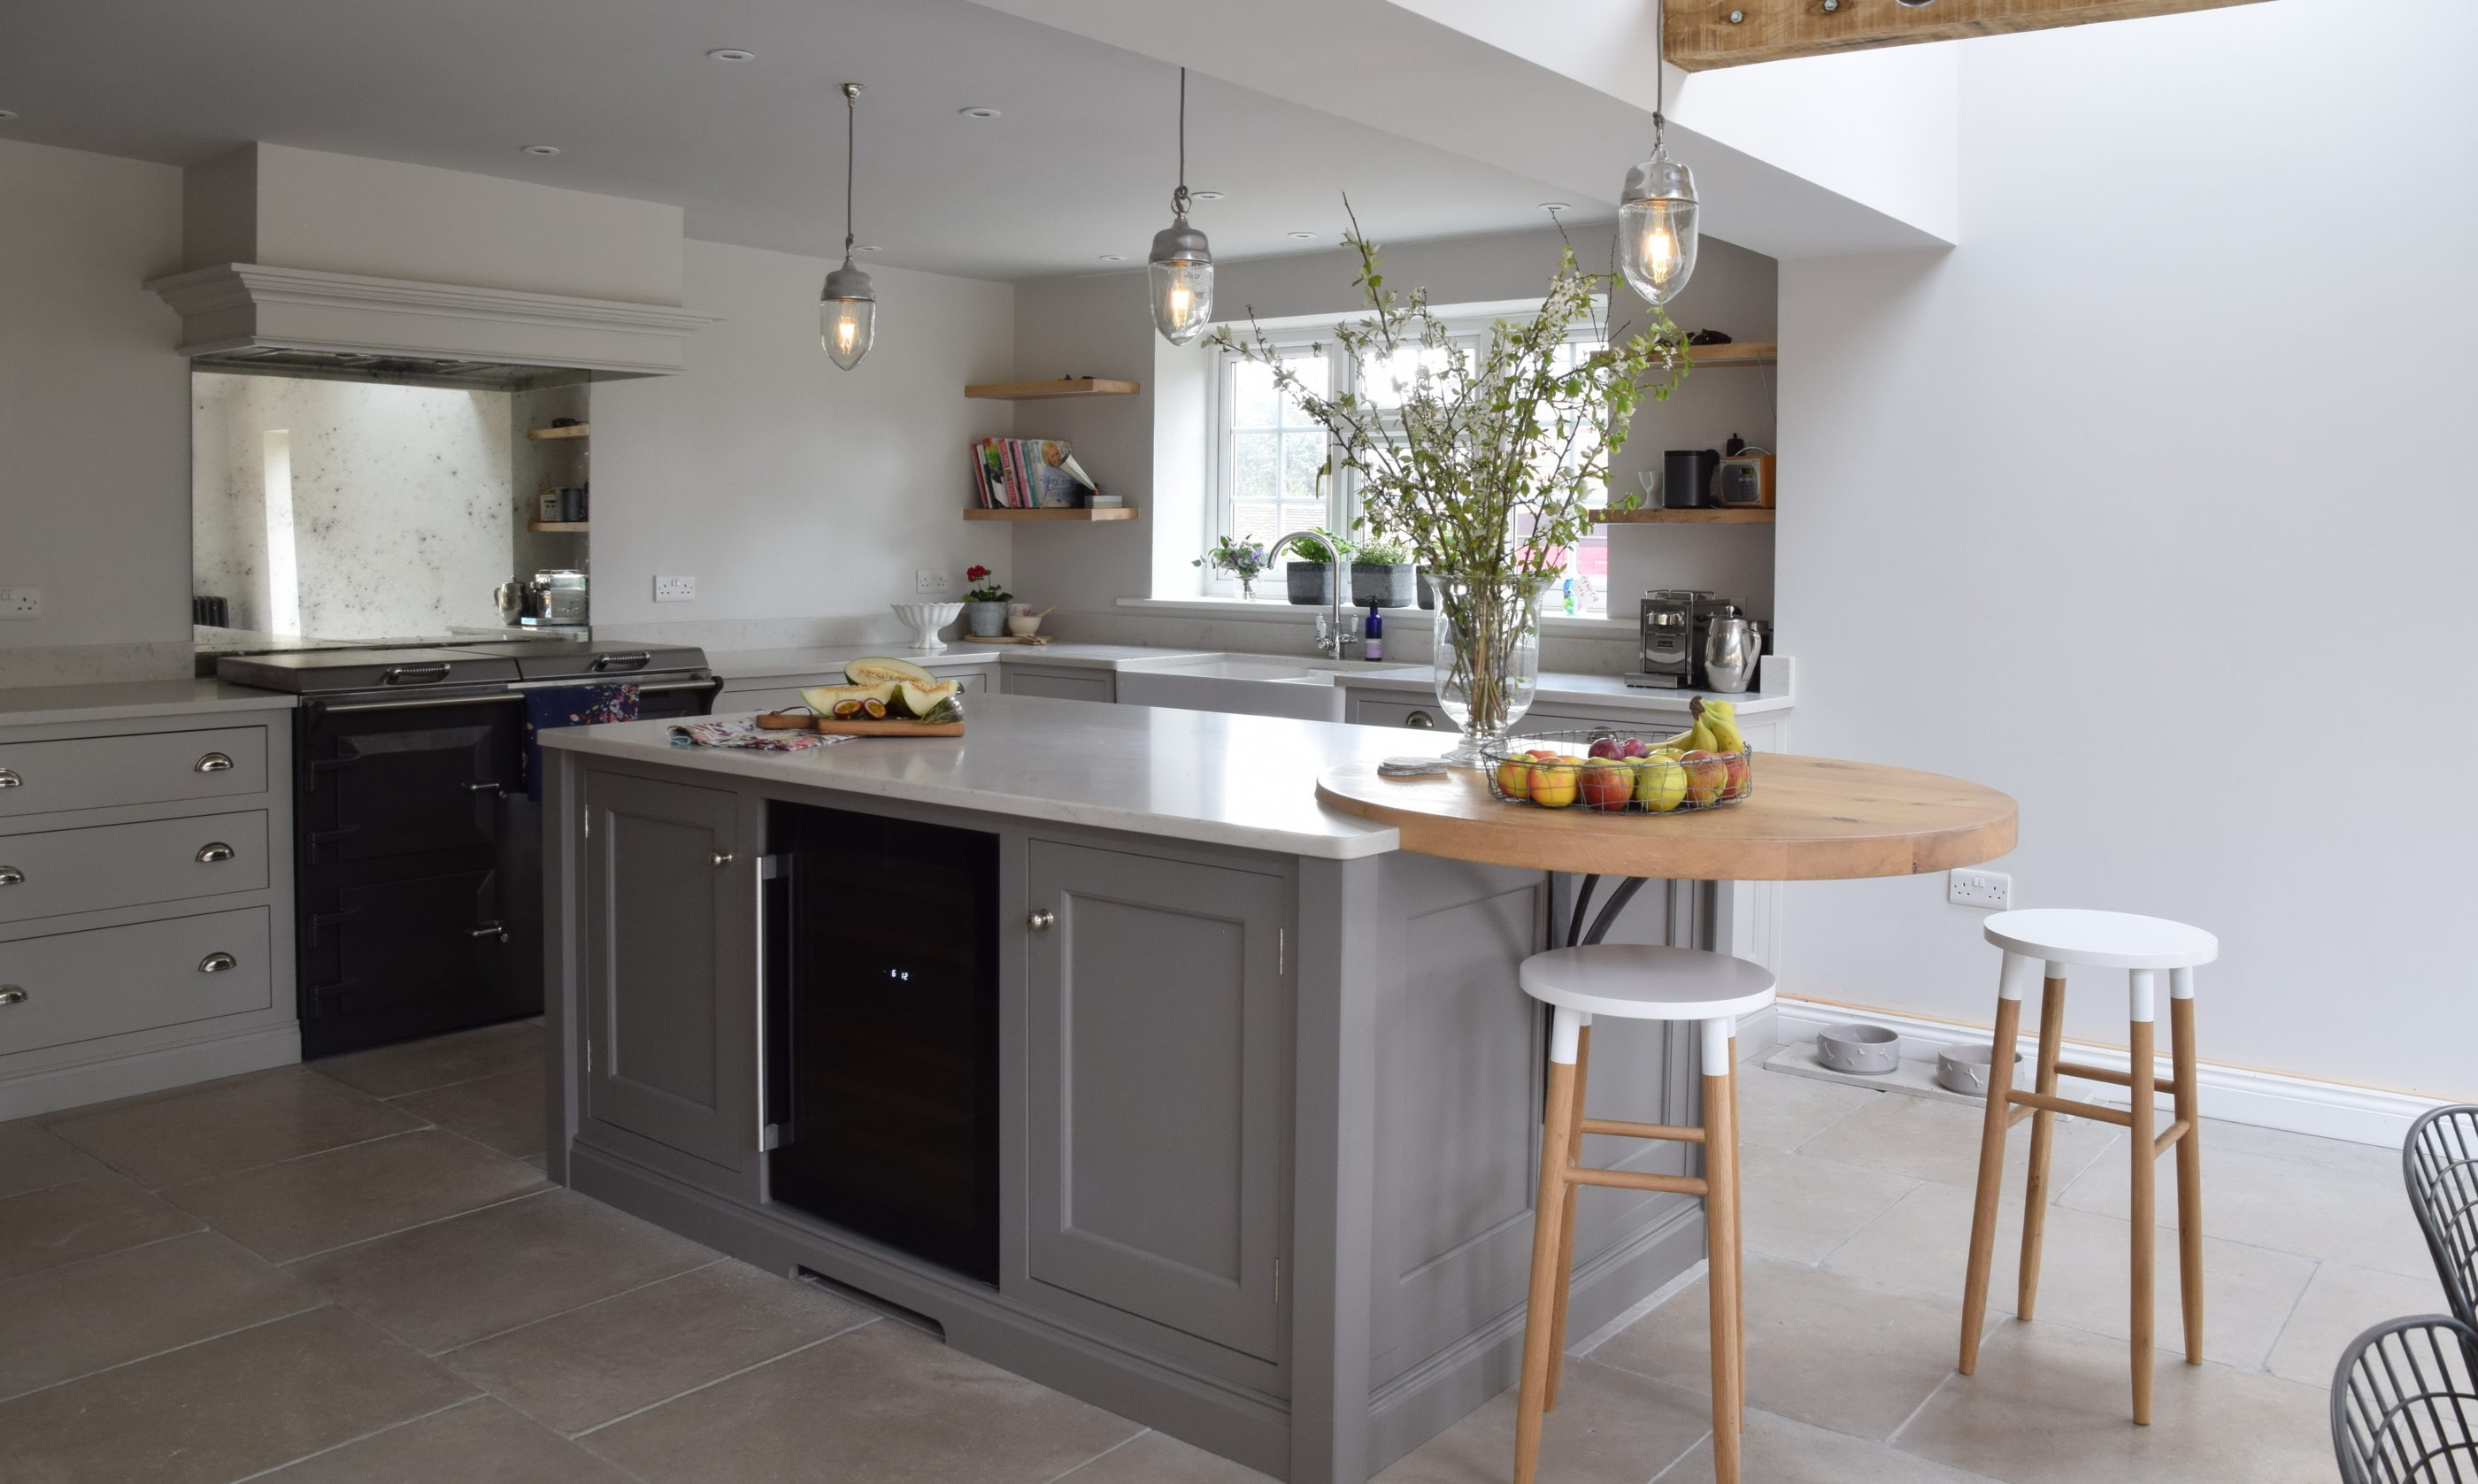 Bespoke Kitchen Design Wiltshire & Dorset